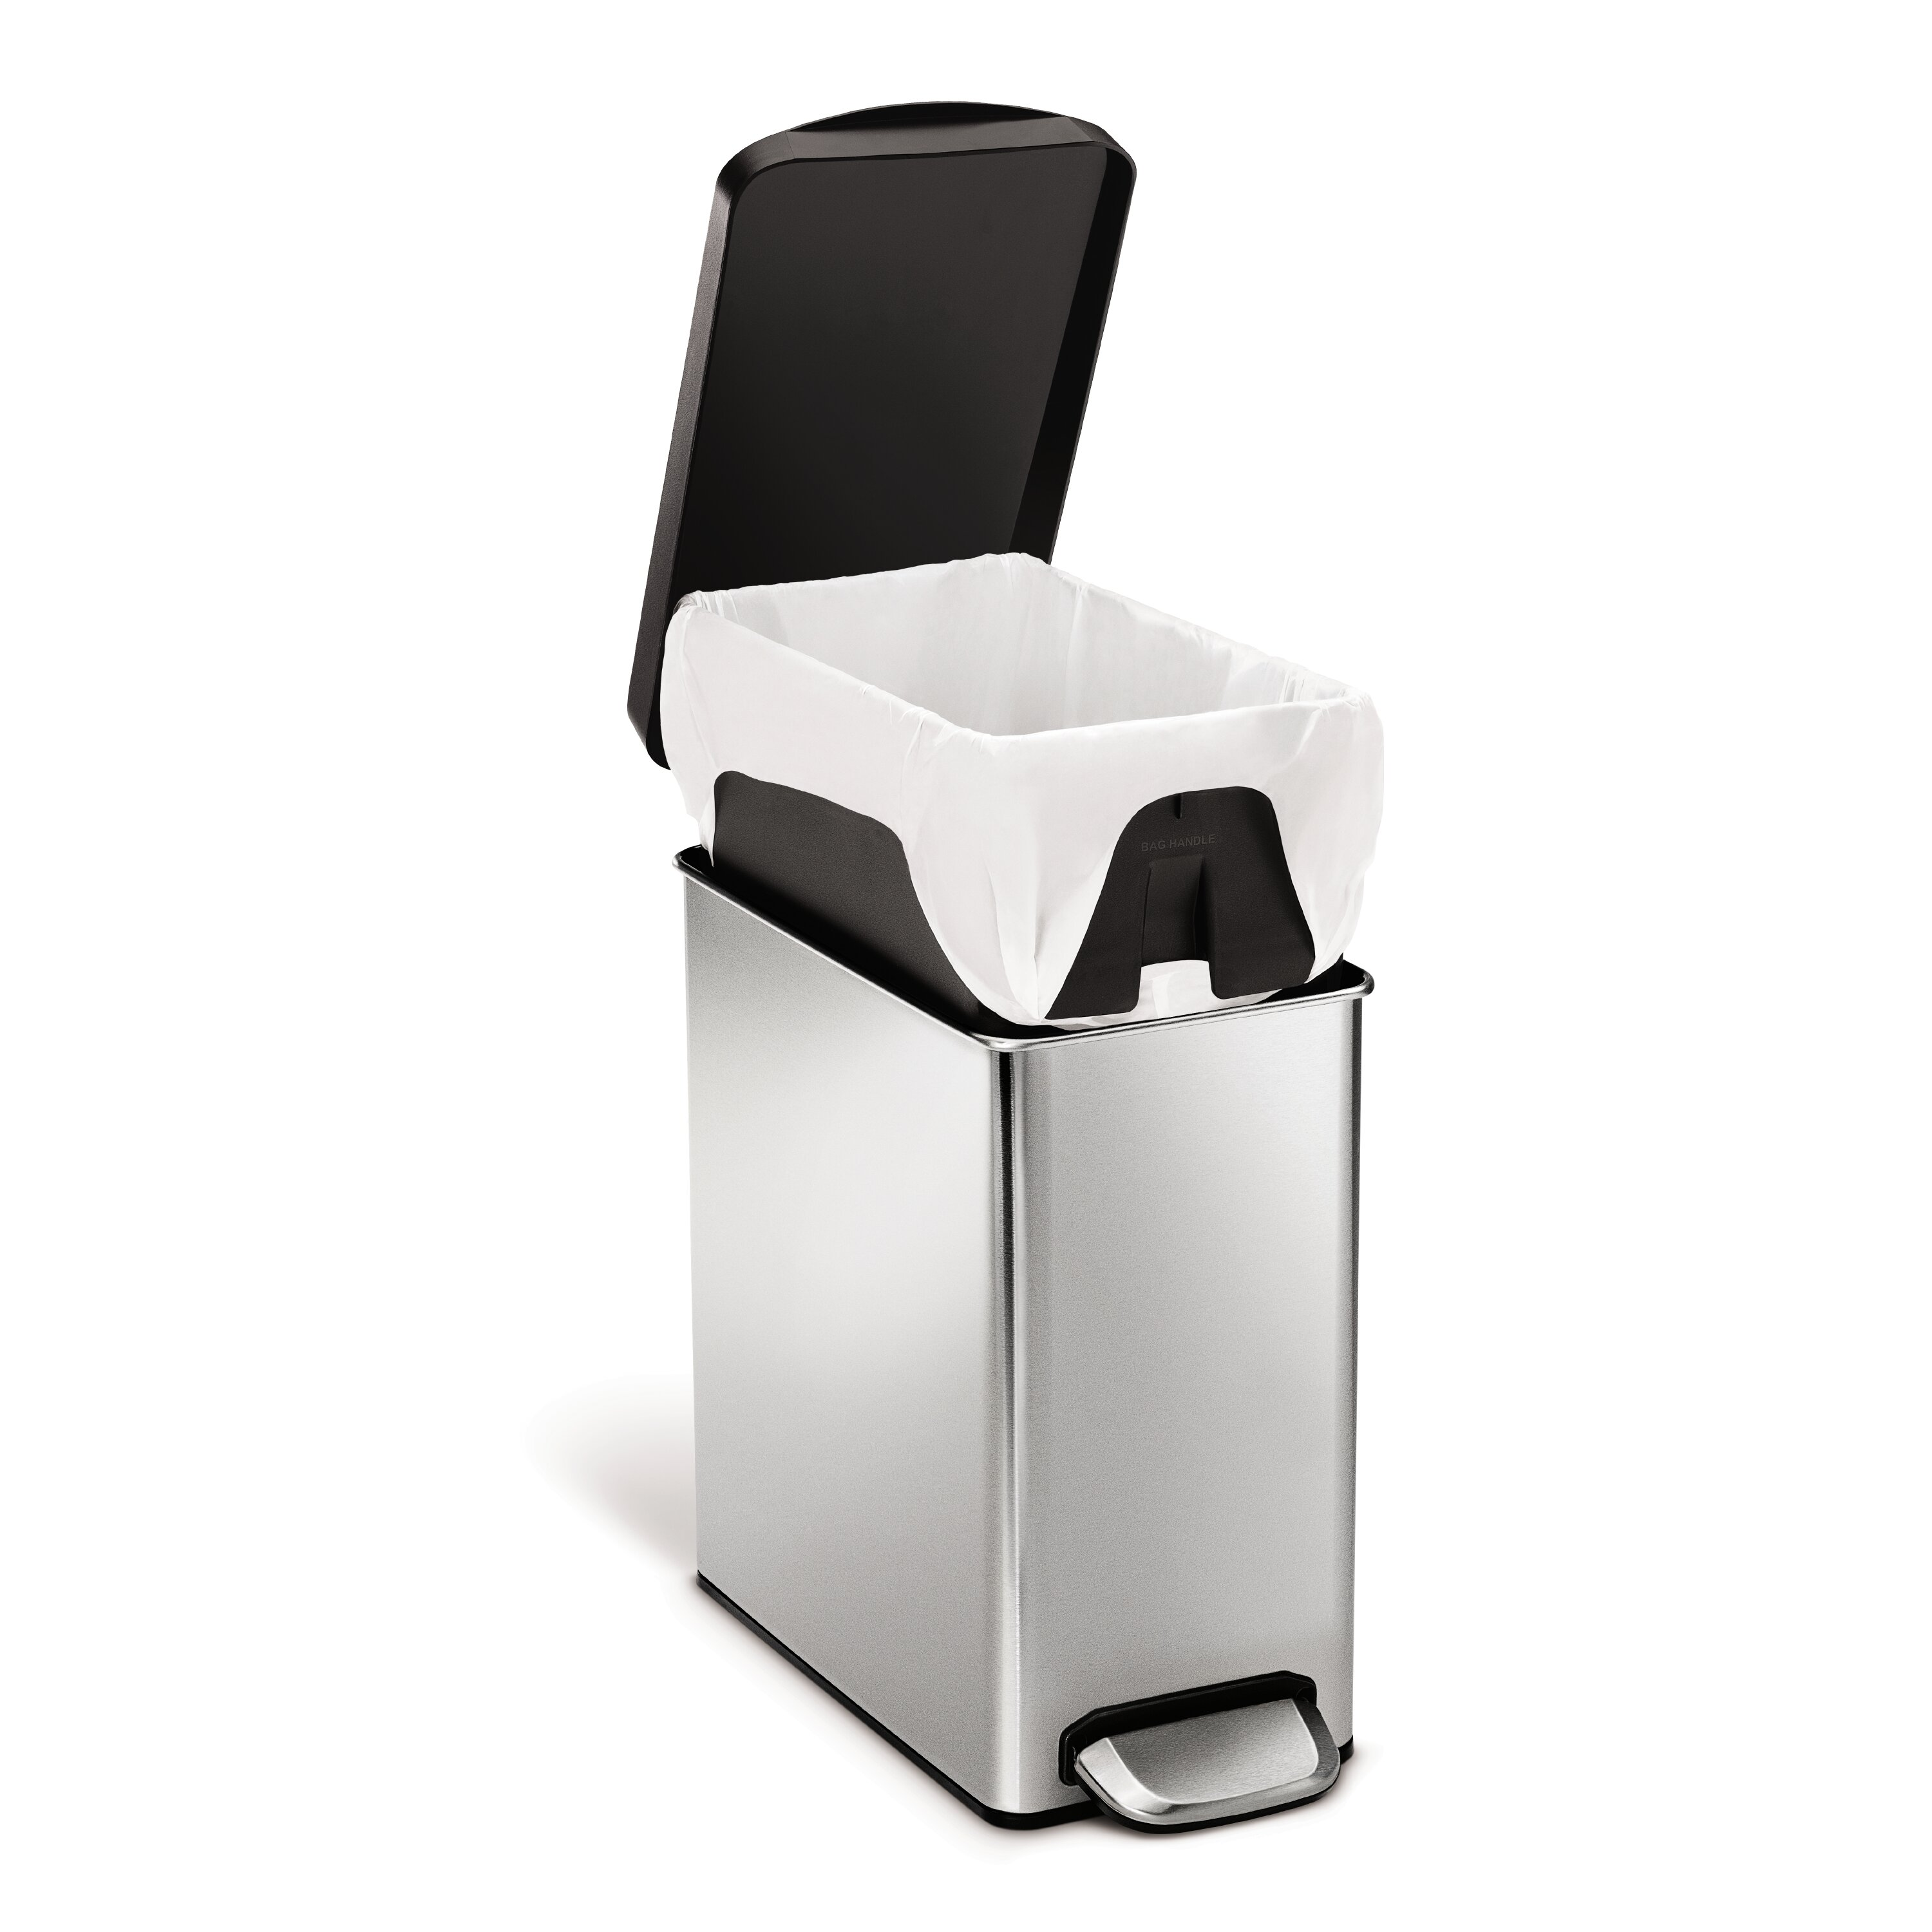 simplehuman Profile 2 6 Gallon Step On Stainless Steel Trash Can. simplehuman Profile 2 6 Gallon Step On Stainless Steel Trash Can